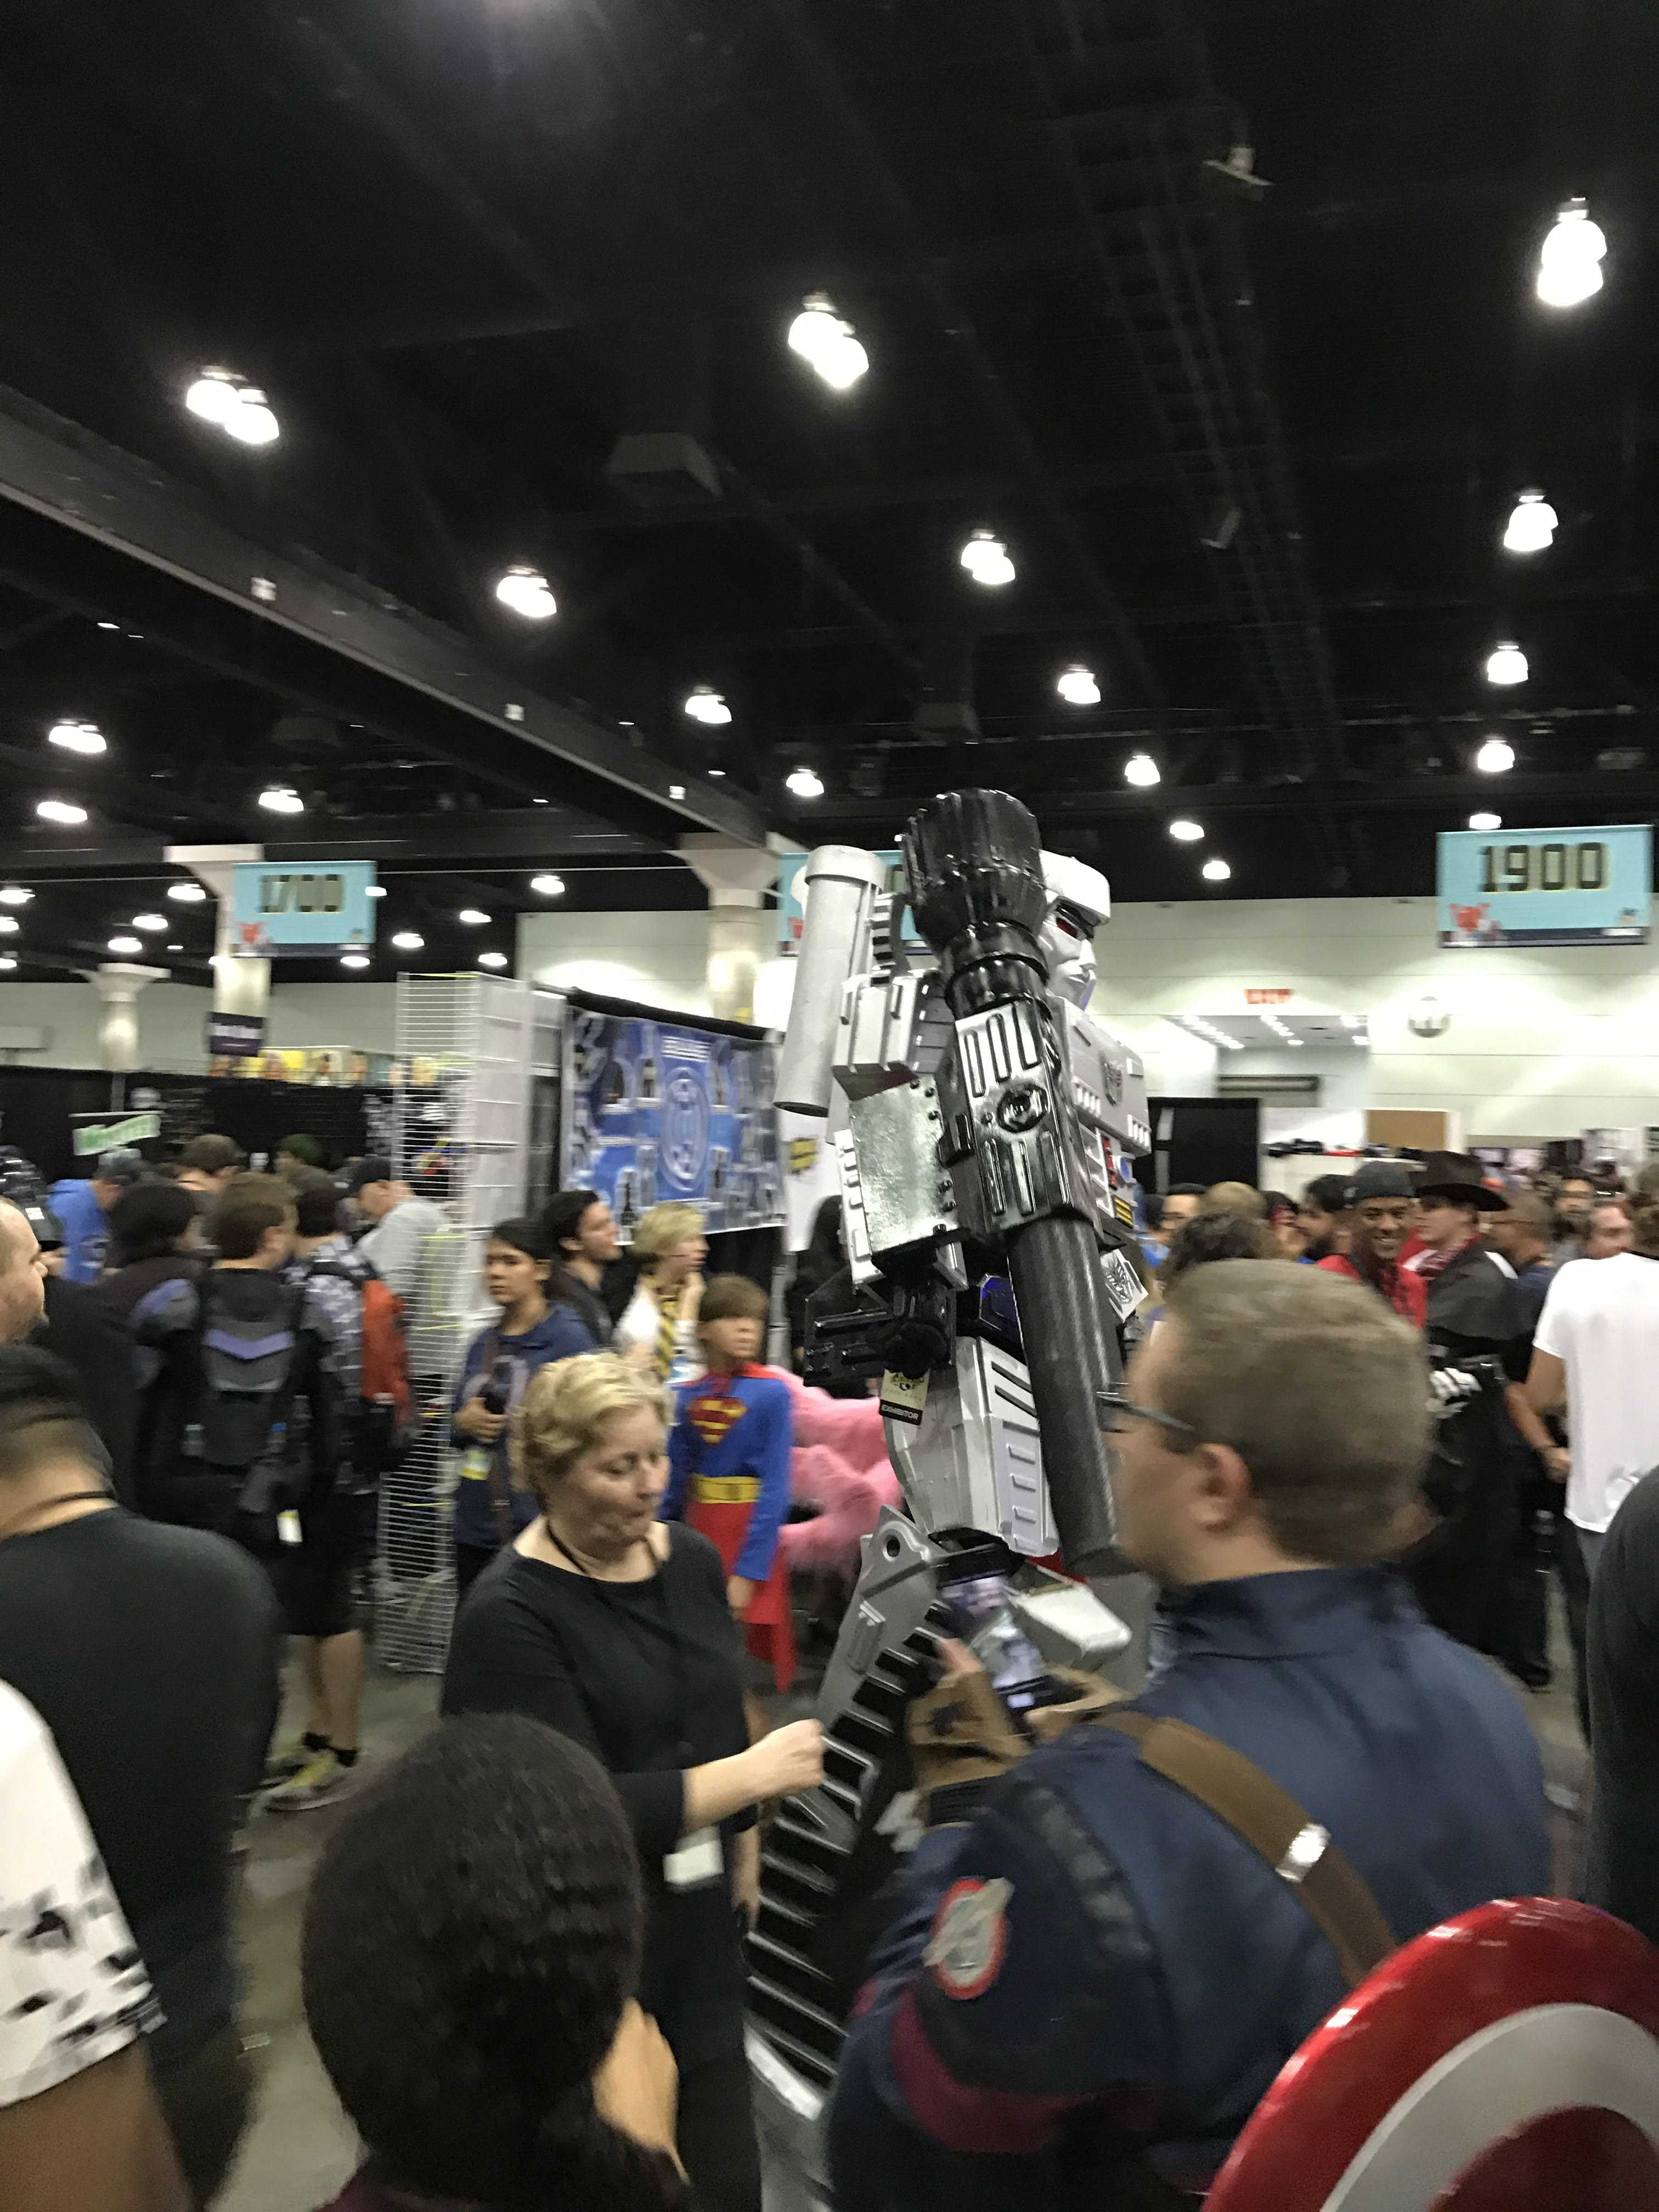 A large group of people gathers near the booths at comic con